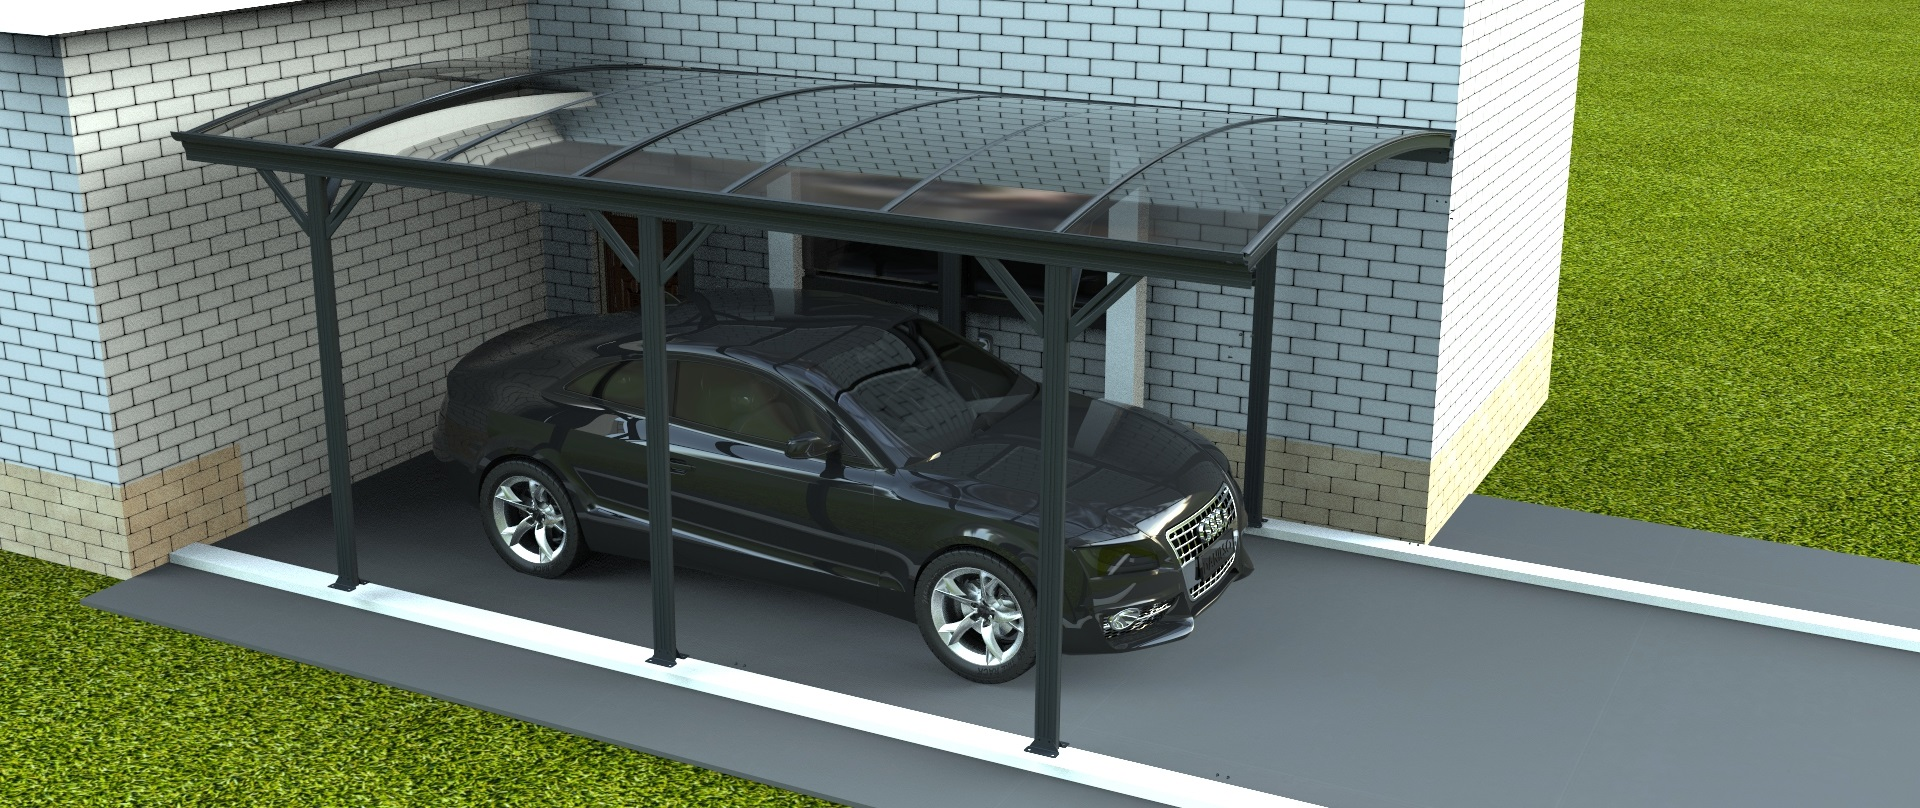 carport abri voiture 5x3m bouvara cp7 abris de jardin en bois pas cher bouvara vente d. Black Bedroom Furniture Sets. Home Design Ideas